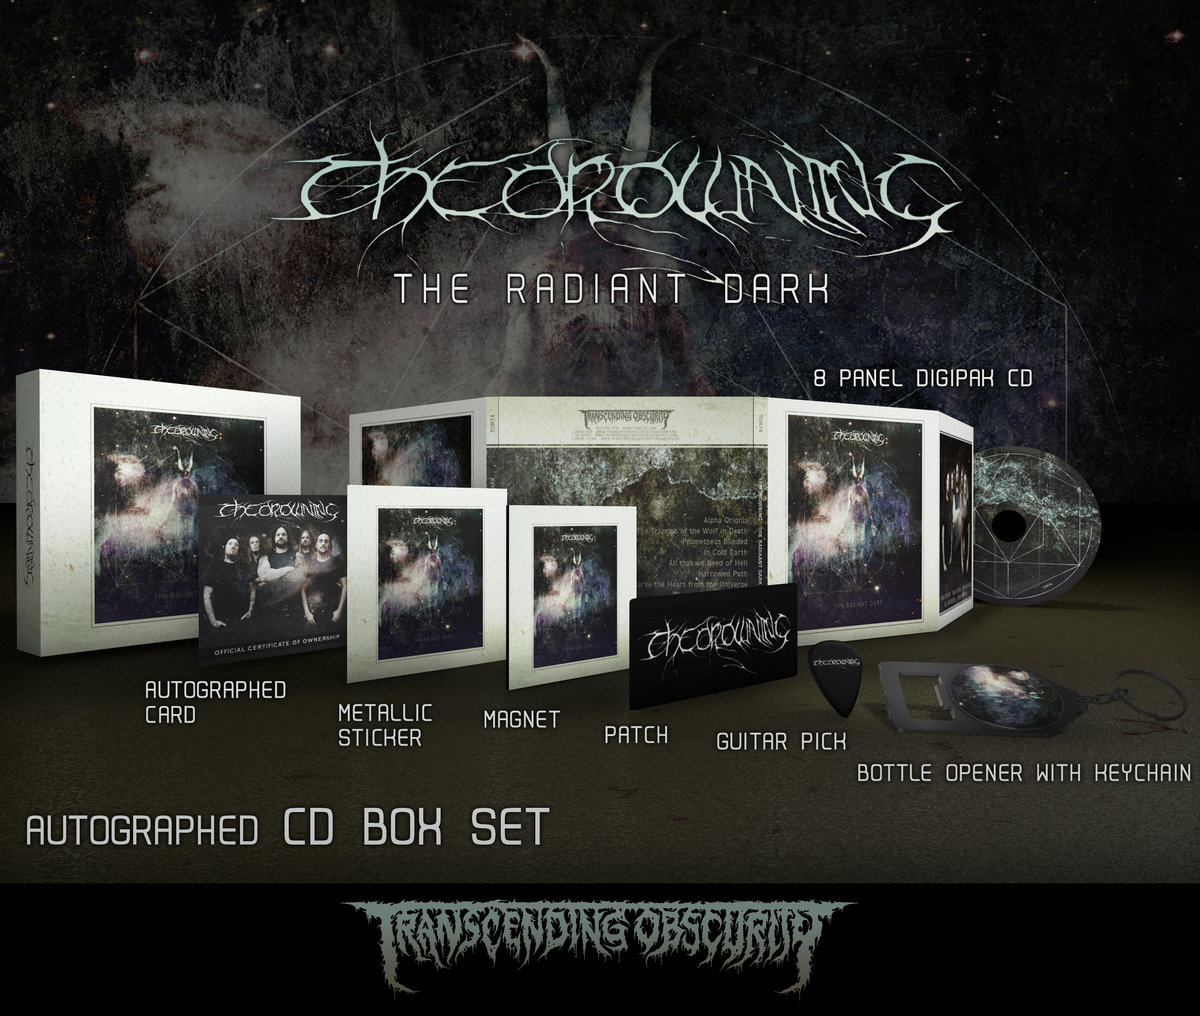 THE DROWNING (UK) -  The Radiant Dark (Death​/​Doom Metal) Autographed CD Box Set (Limited to 150)